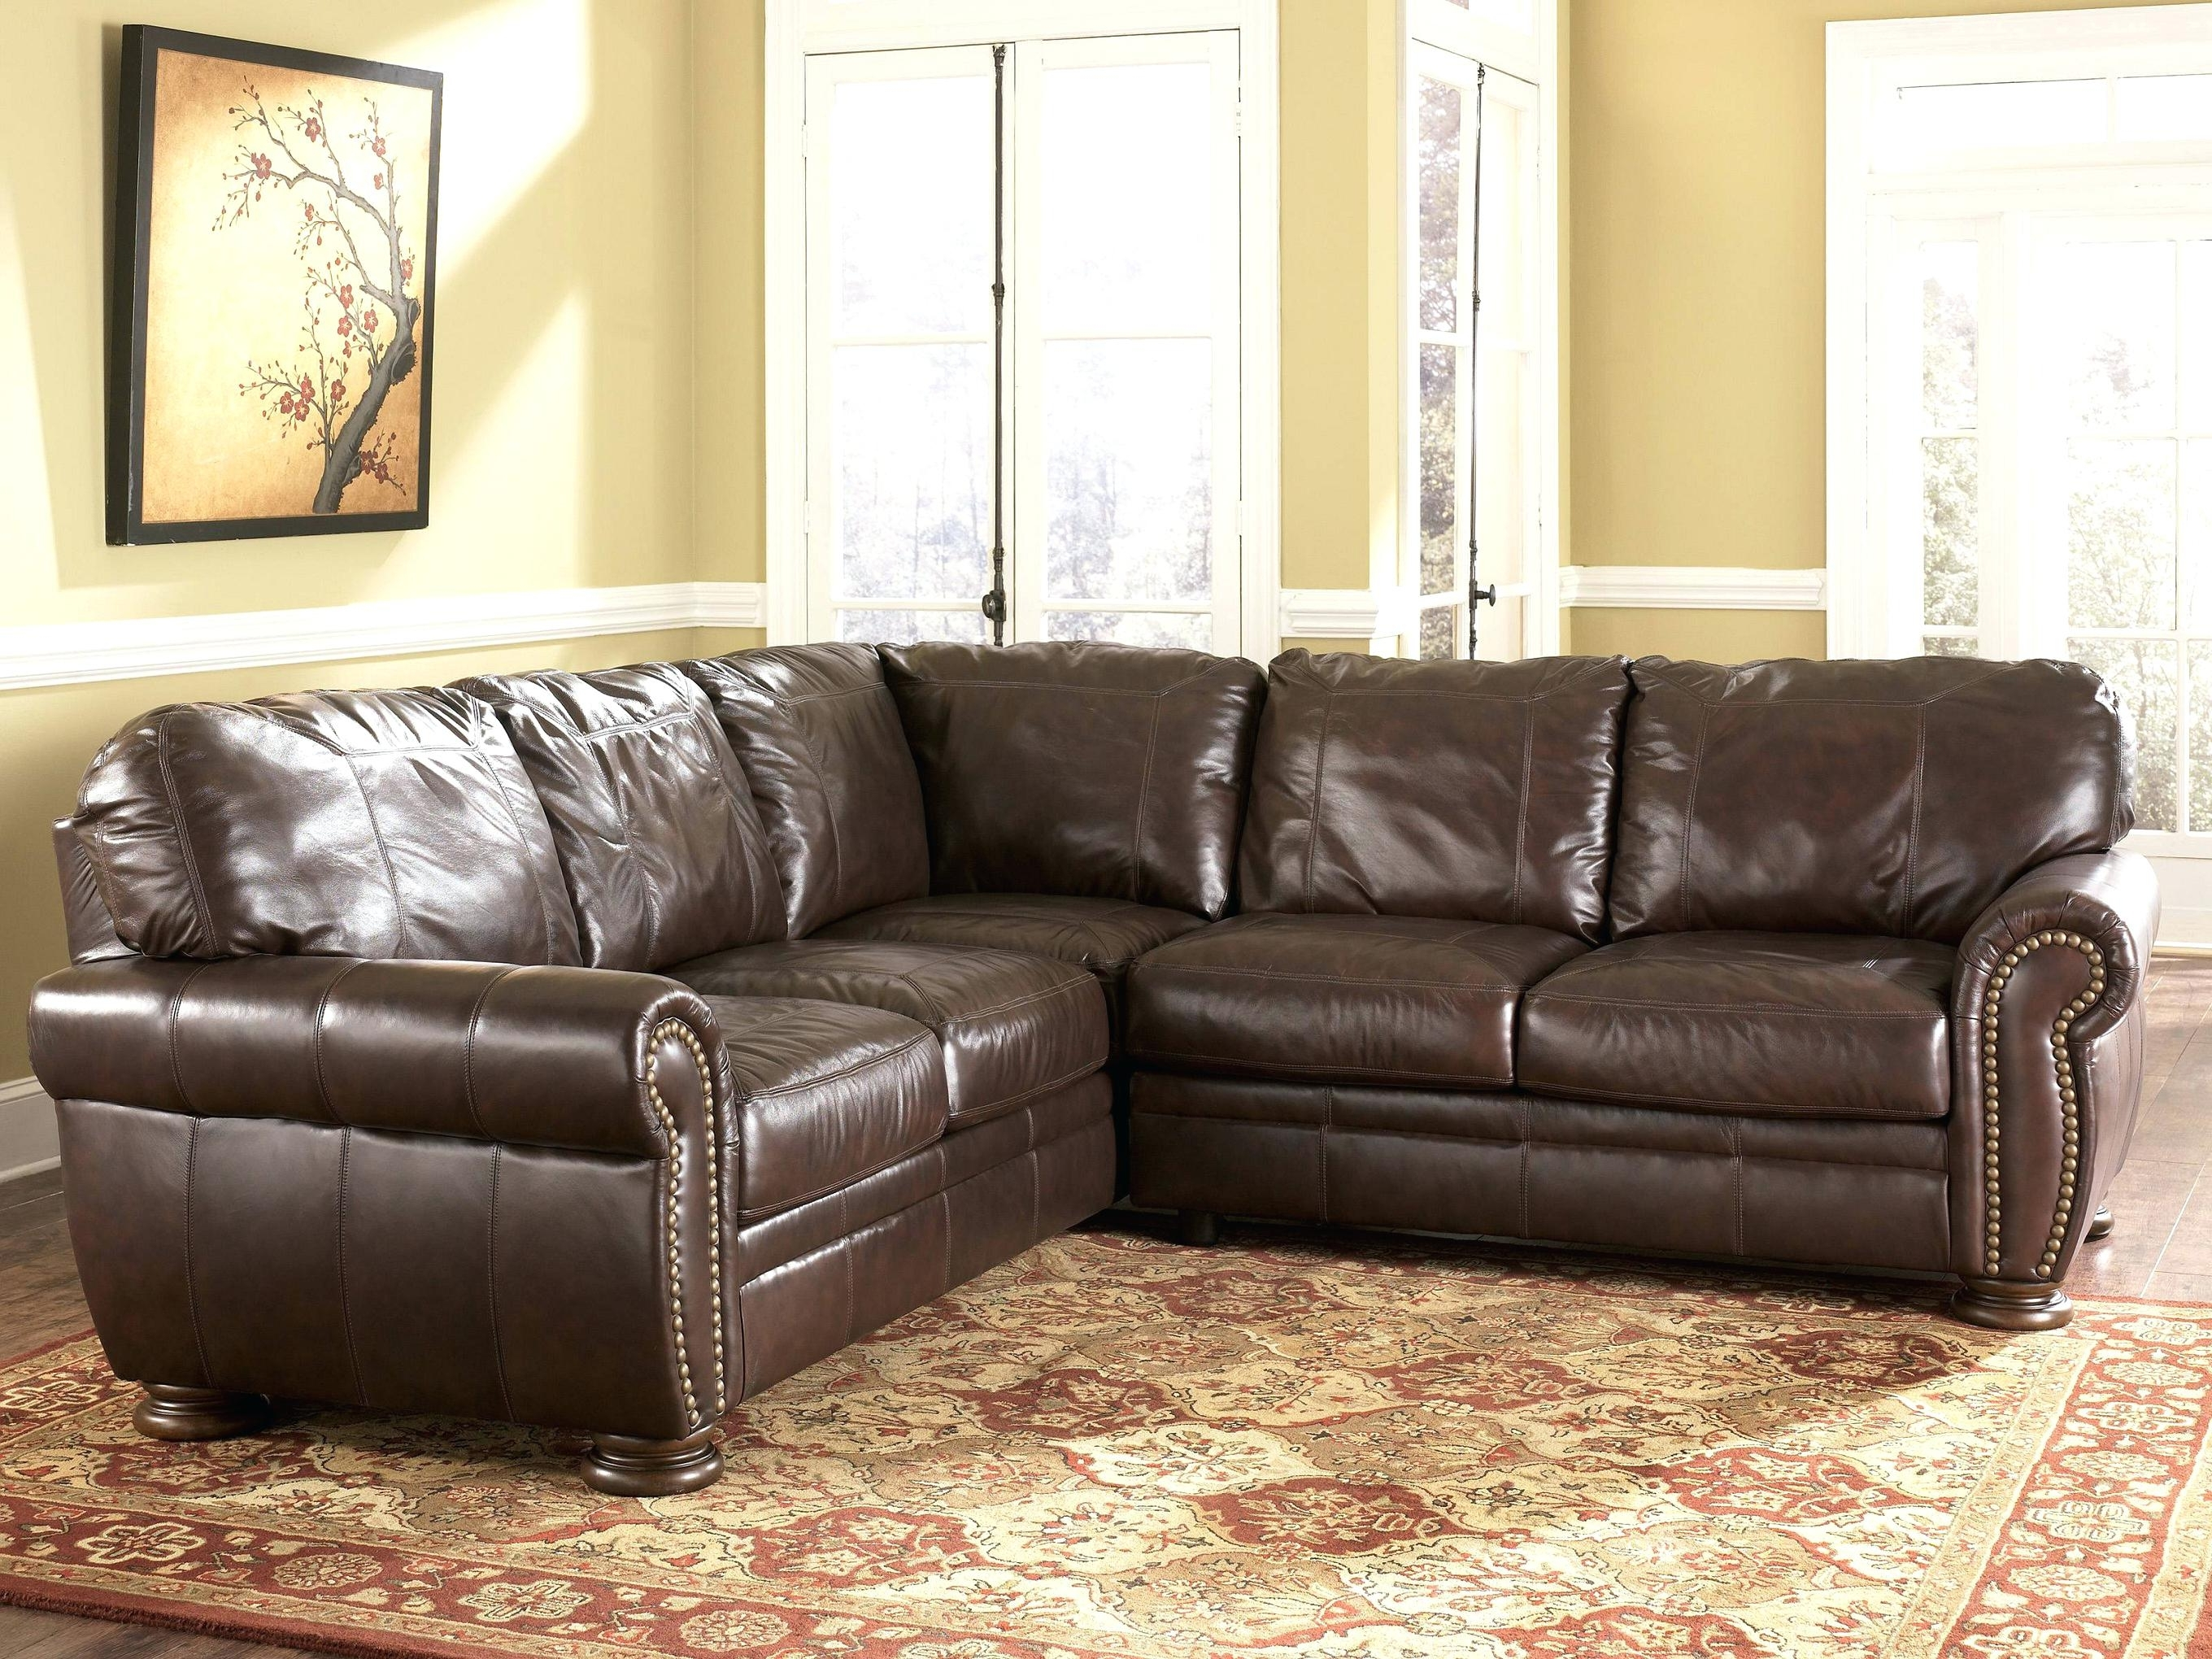 Used Sectional Sofas Regarding Widely Used Discount Sofa Sectionals Cheap Used Sectional Sofas For Sale Black (Gallery 8 of 20)